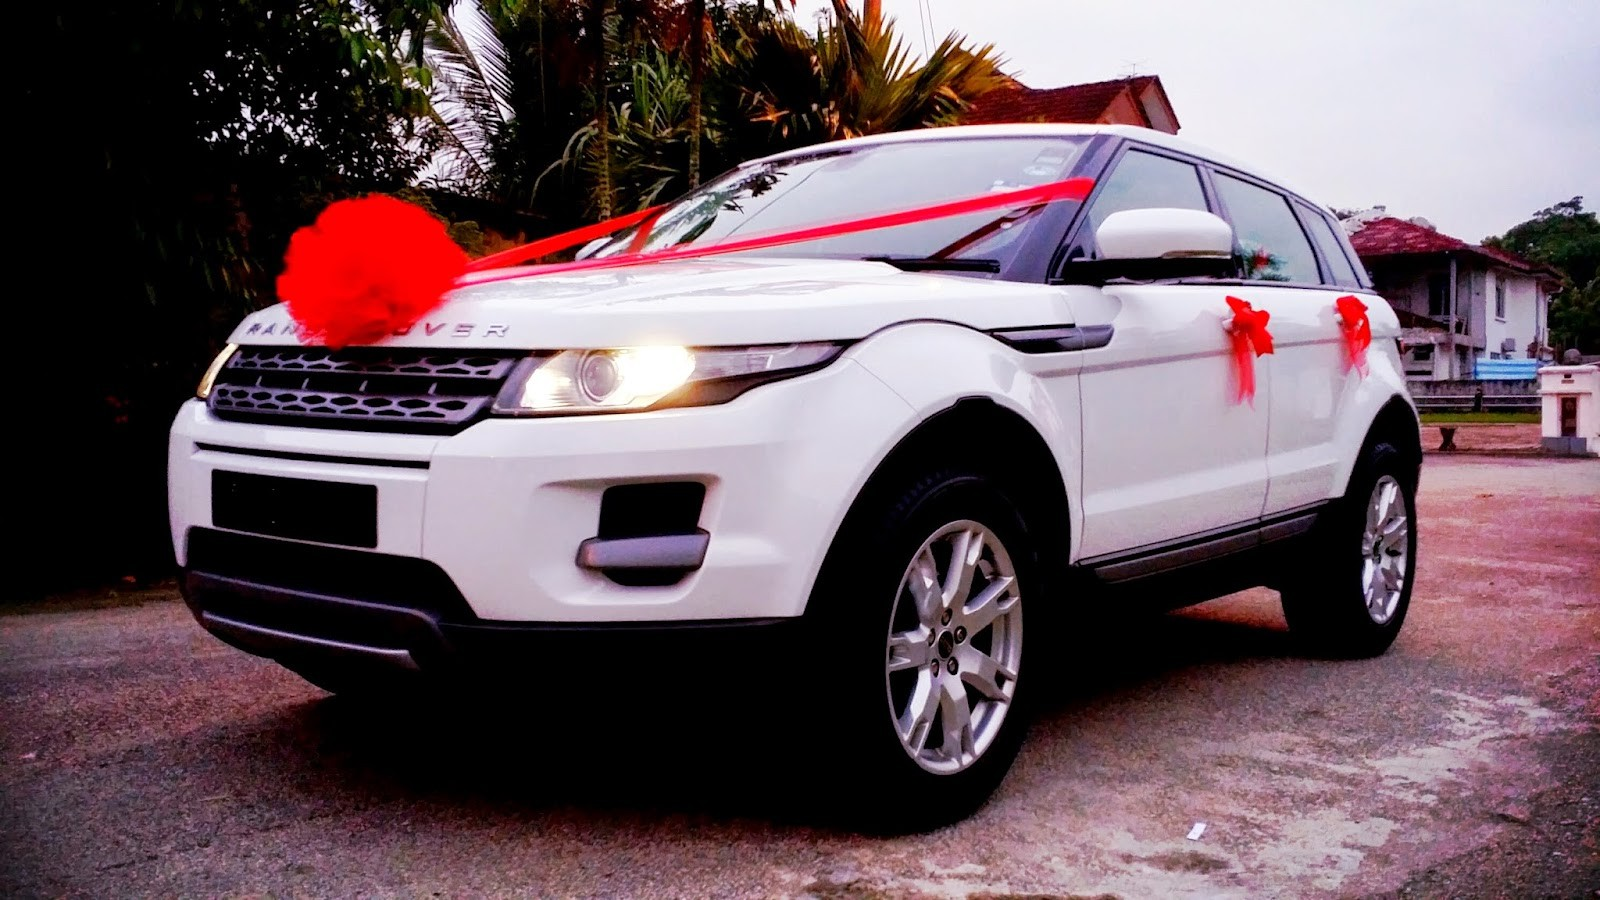 Land Rover cars Range Rover Car Hire in Chandigarh for Wedding